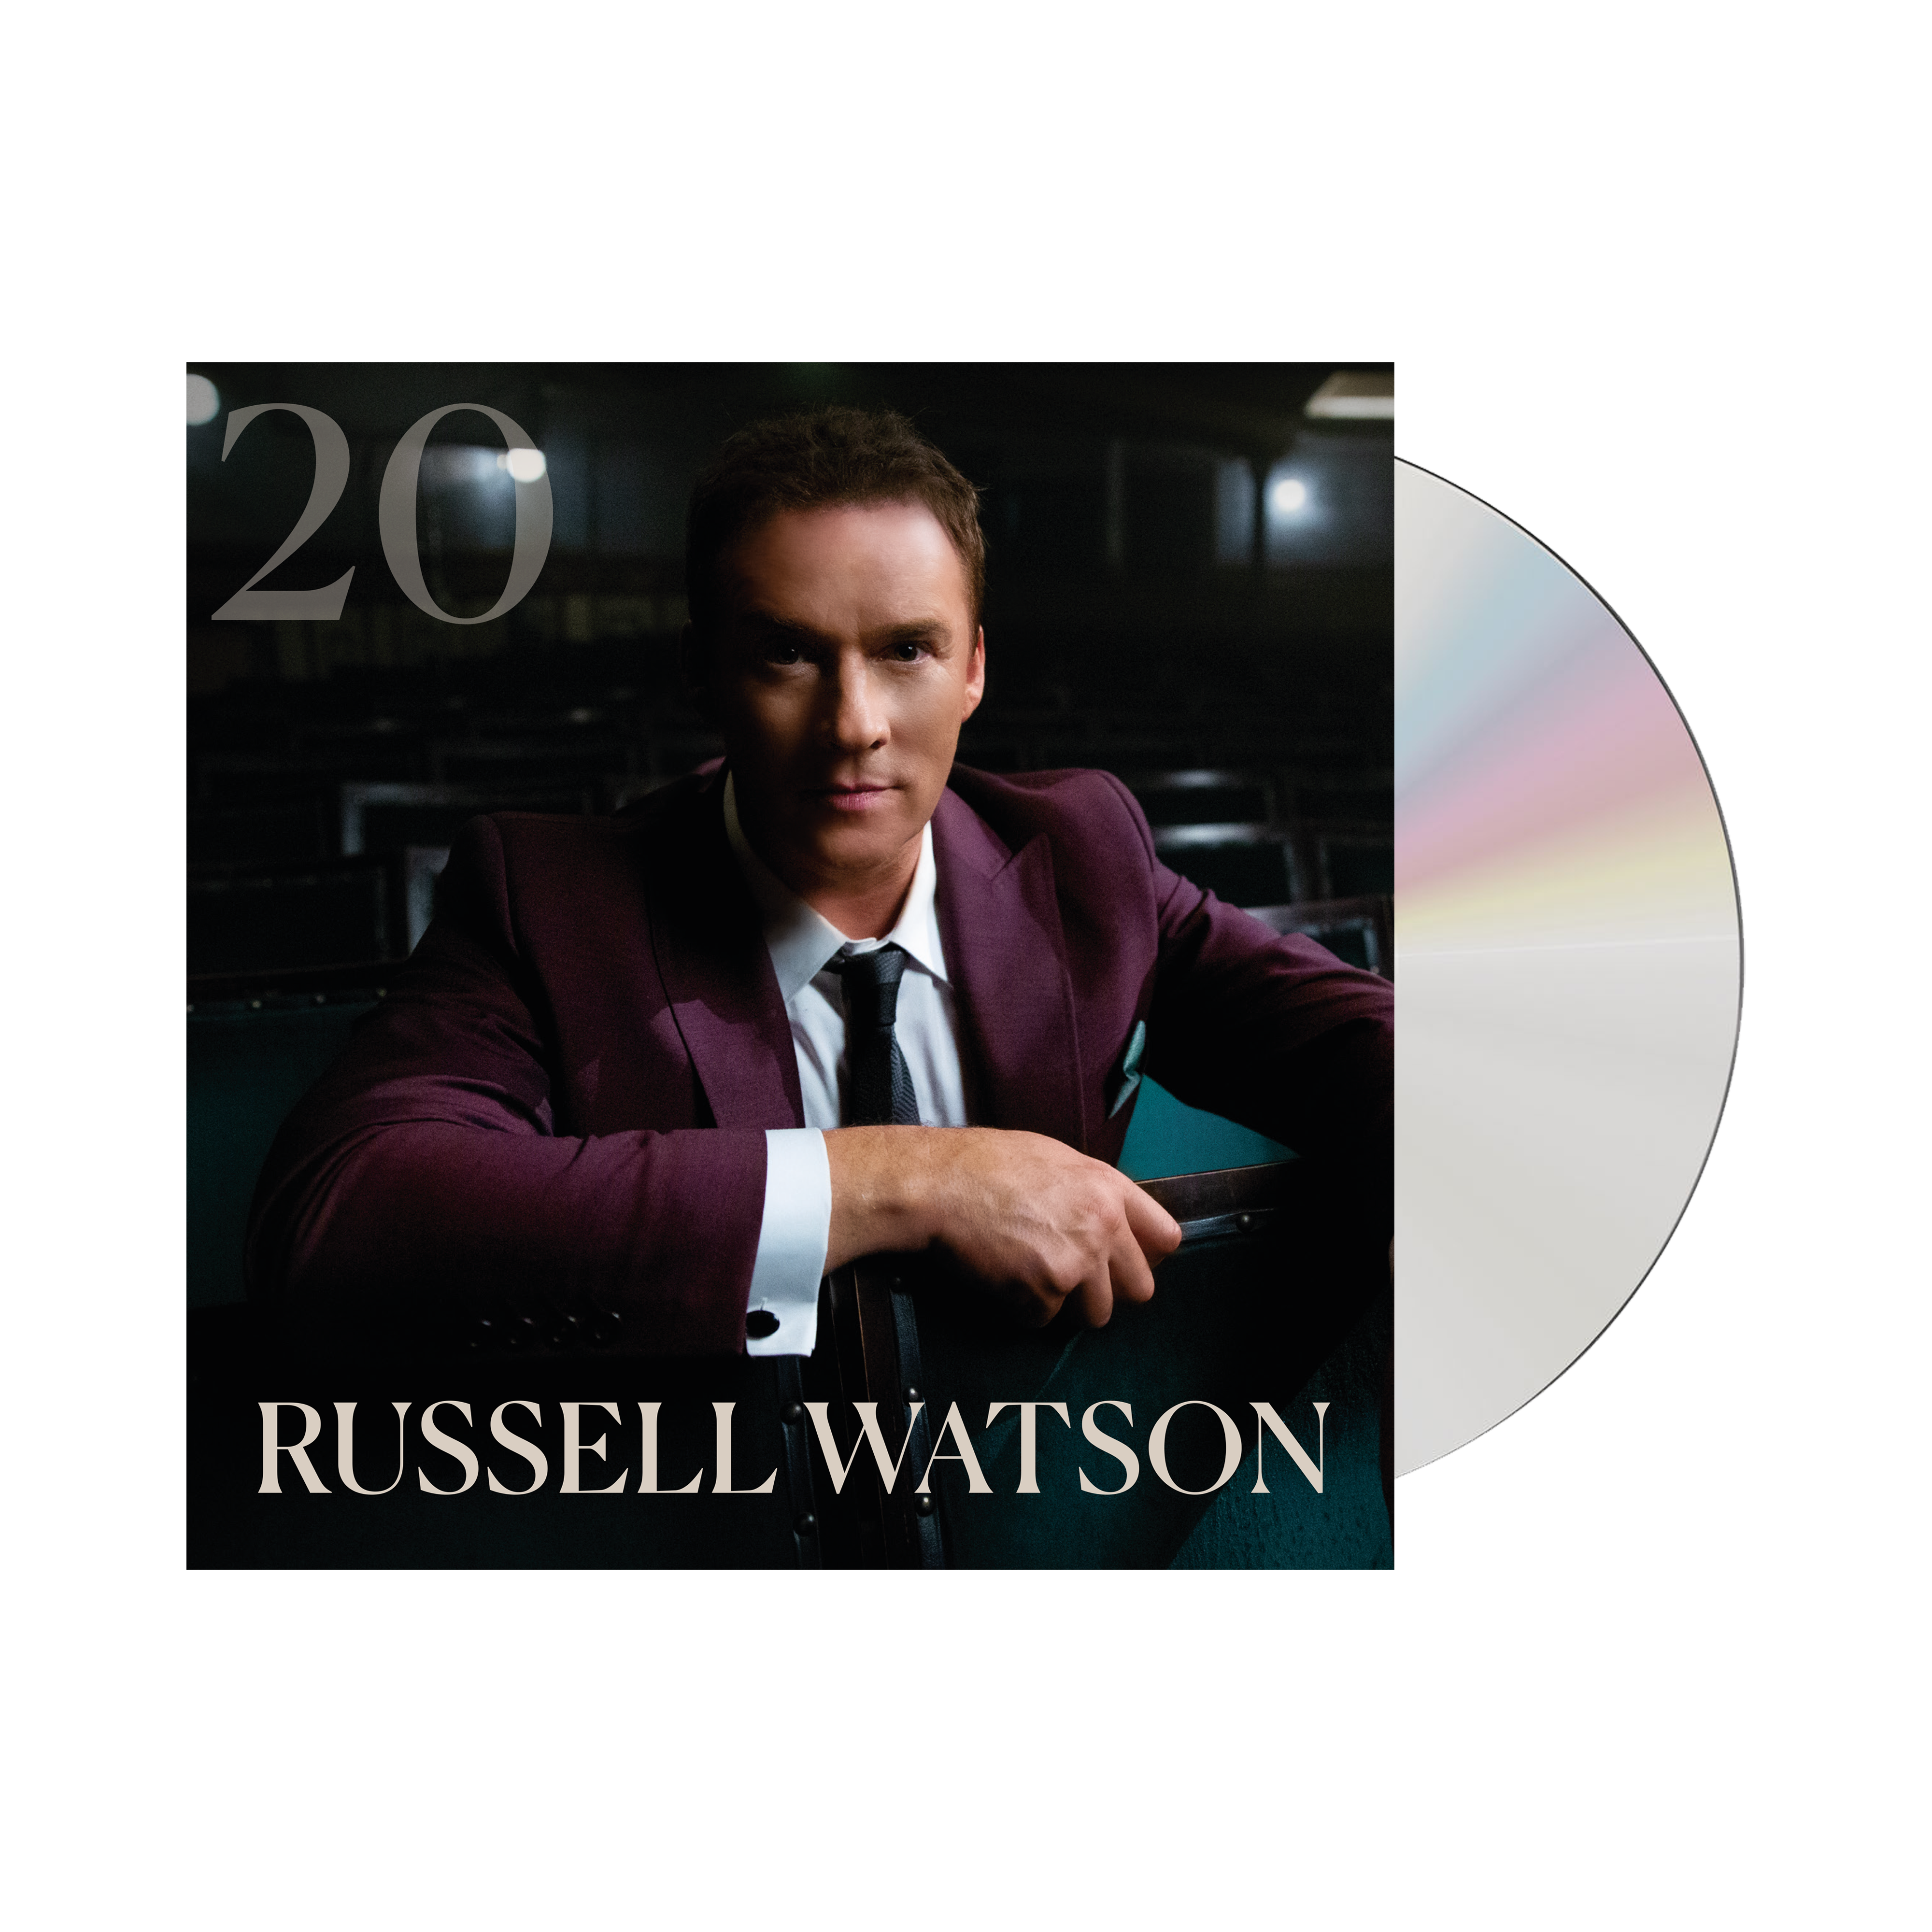 Buy Online Russell Watson - '20' CD Album (w/ Signed Booklet) + Photograph (Signed)